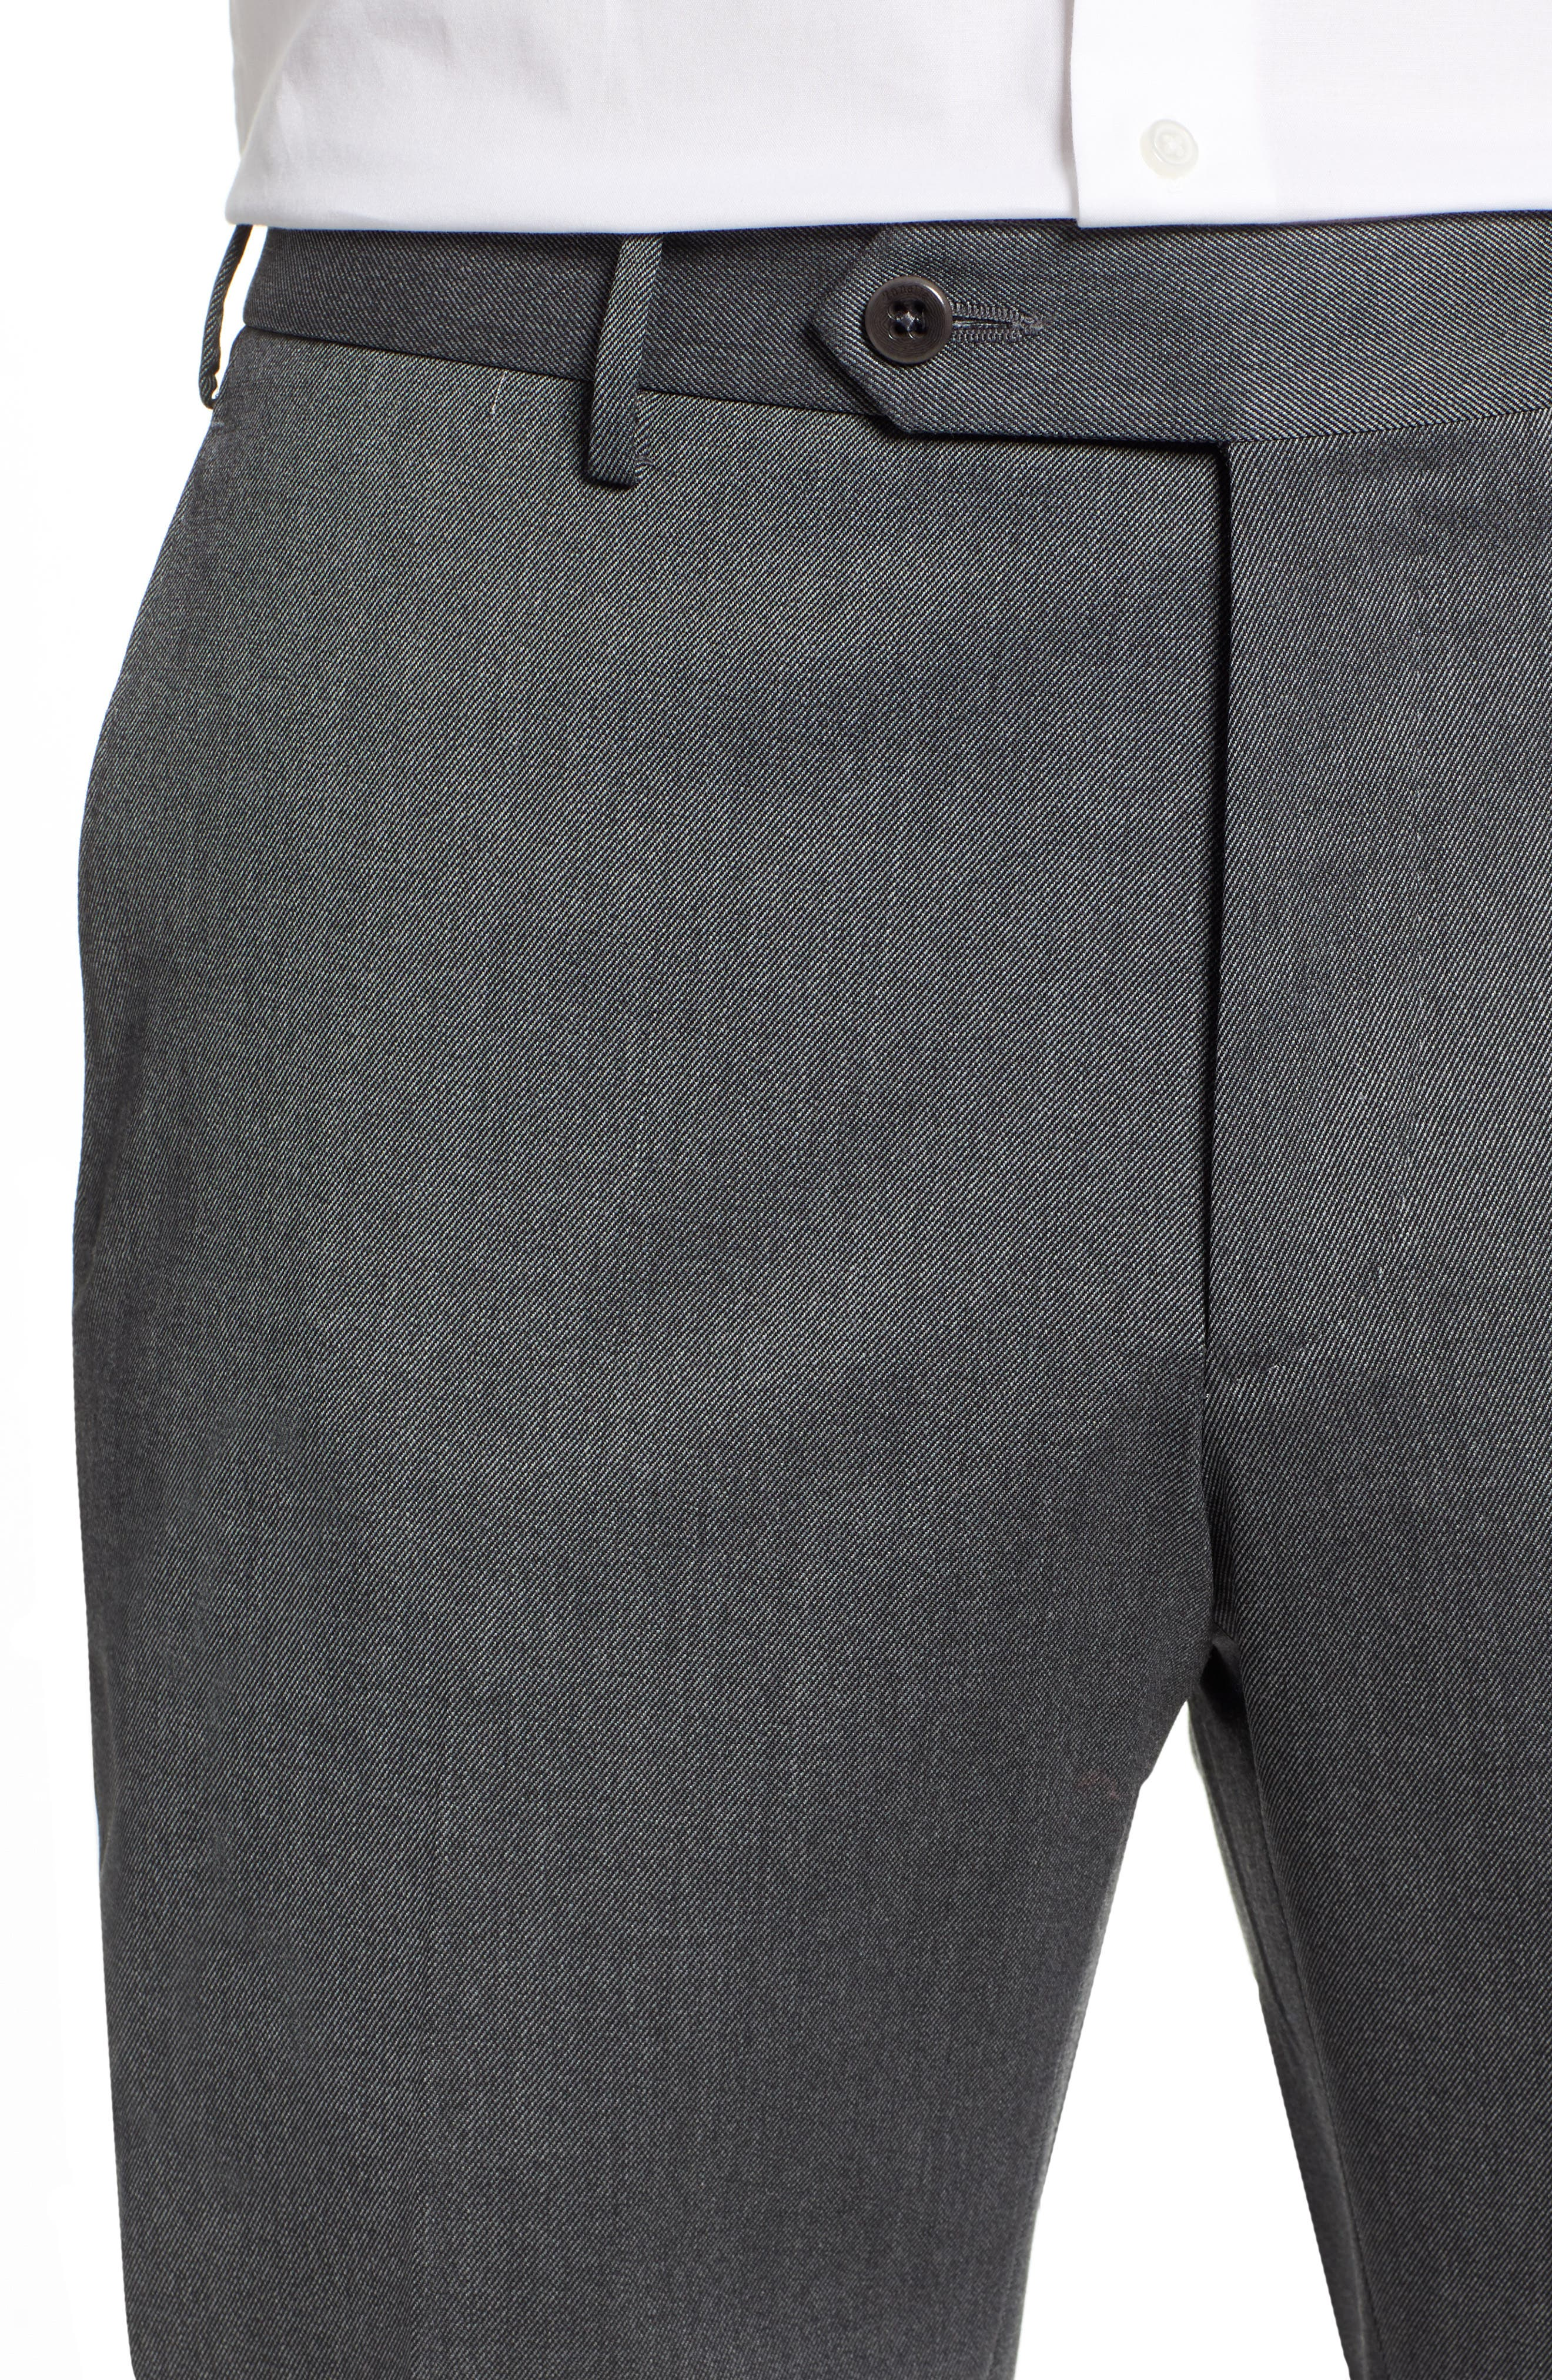 Parker Flat Front Stretch Twill Wool Trousers,                             Alternate thumbnail 4, color,                             GREY